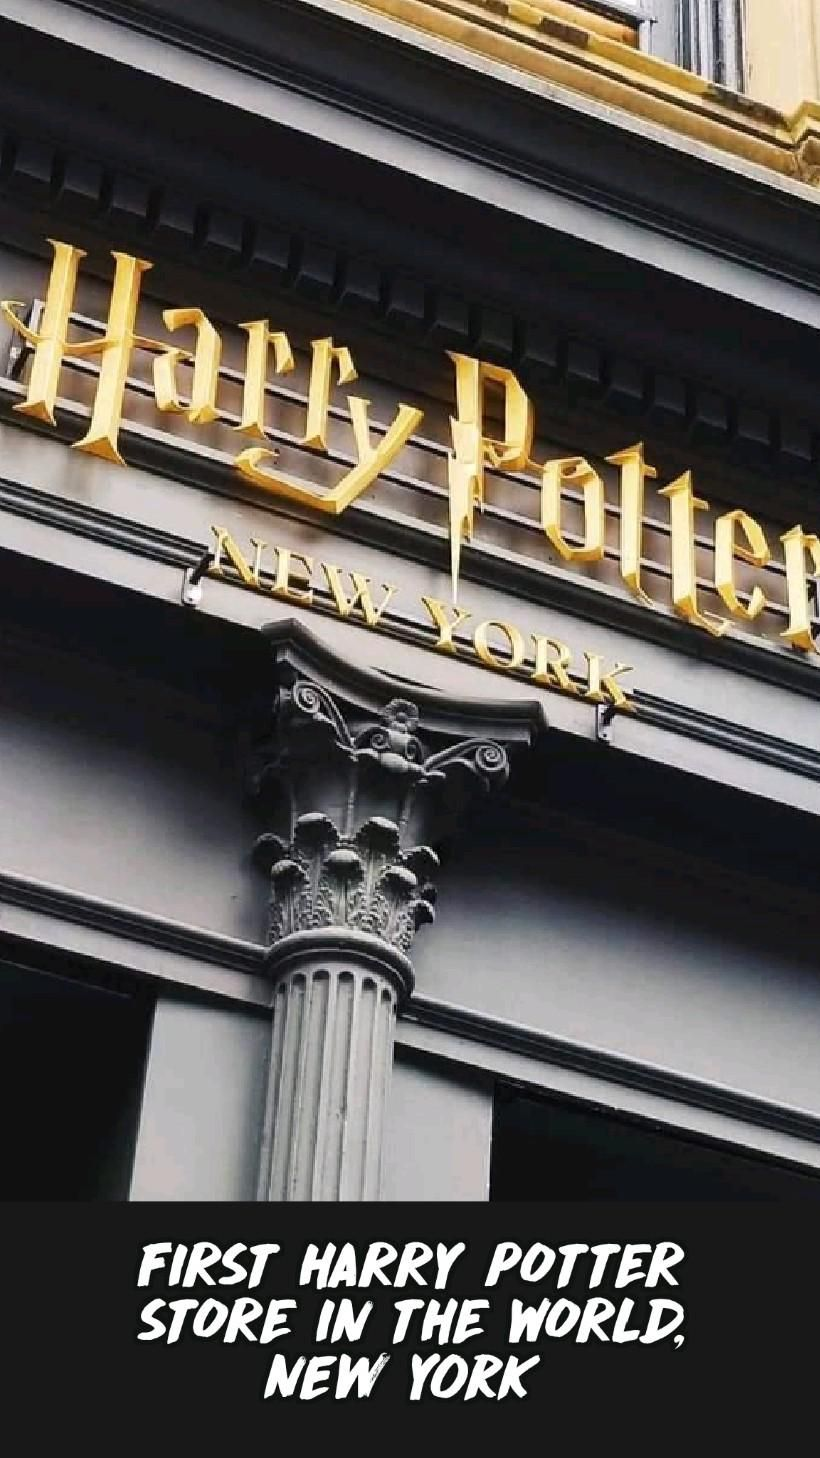 FIRST HARRY POTTER STORE IN THE WORLD, New York